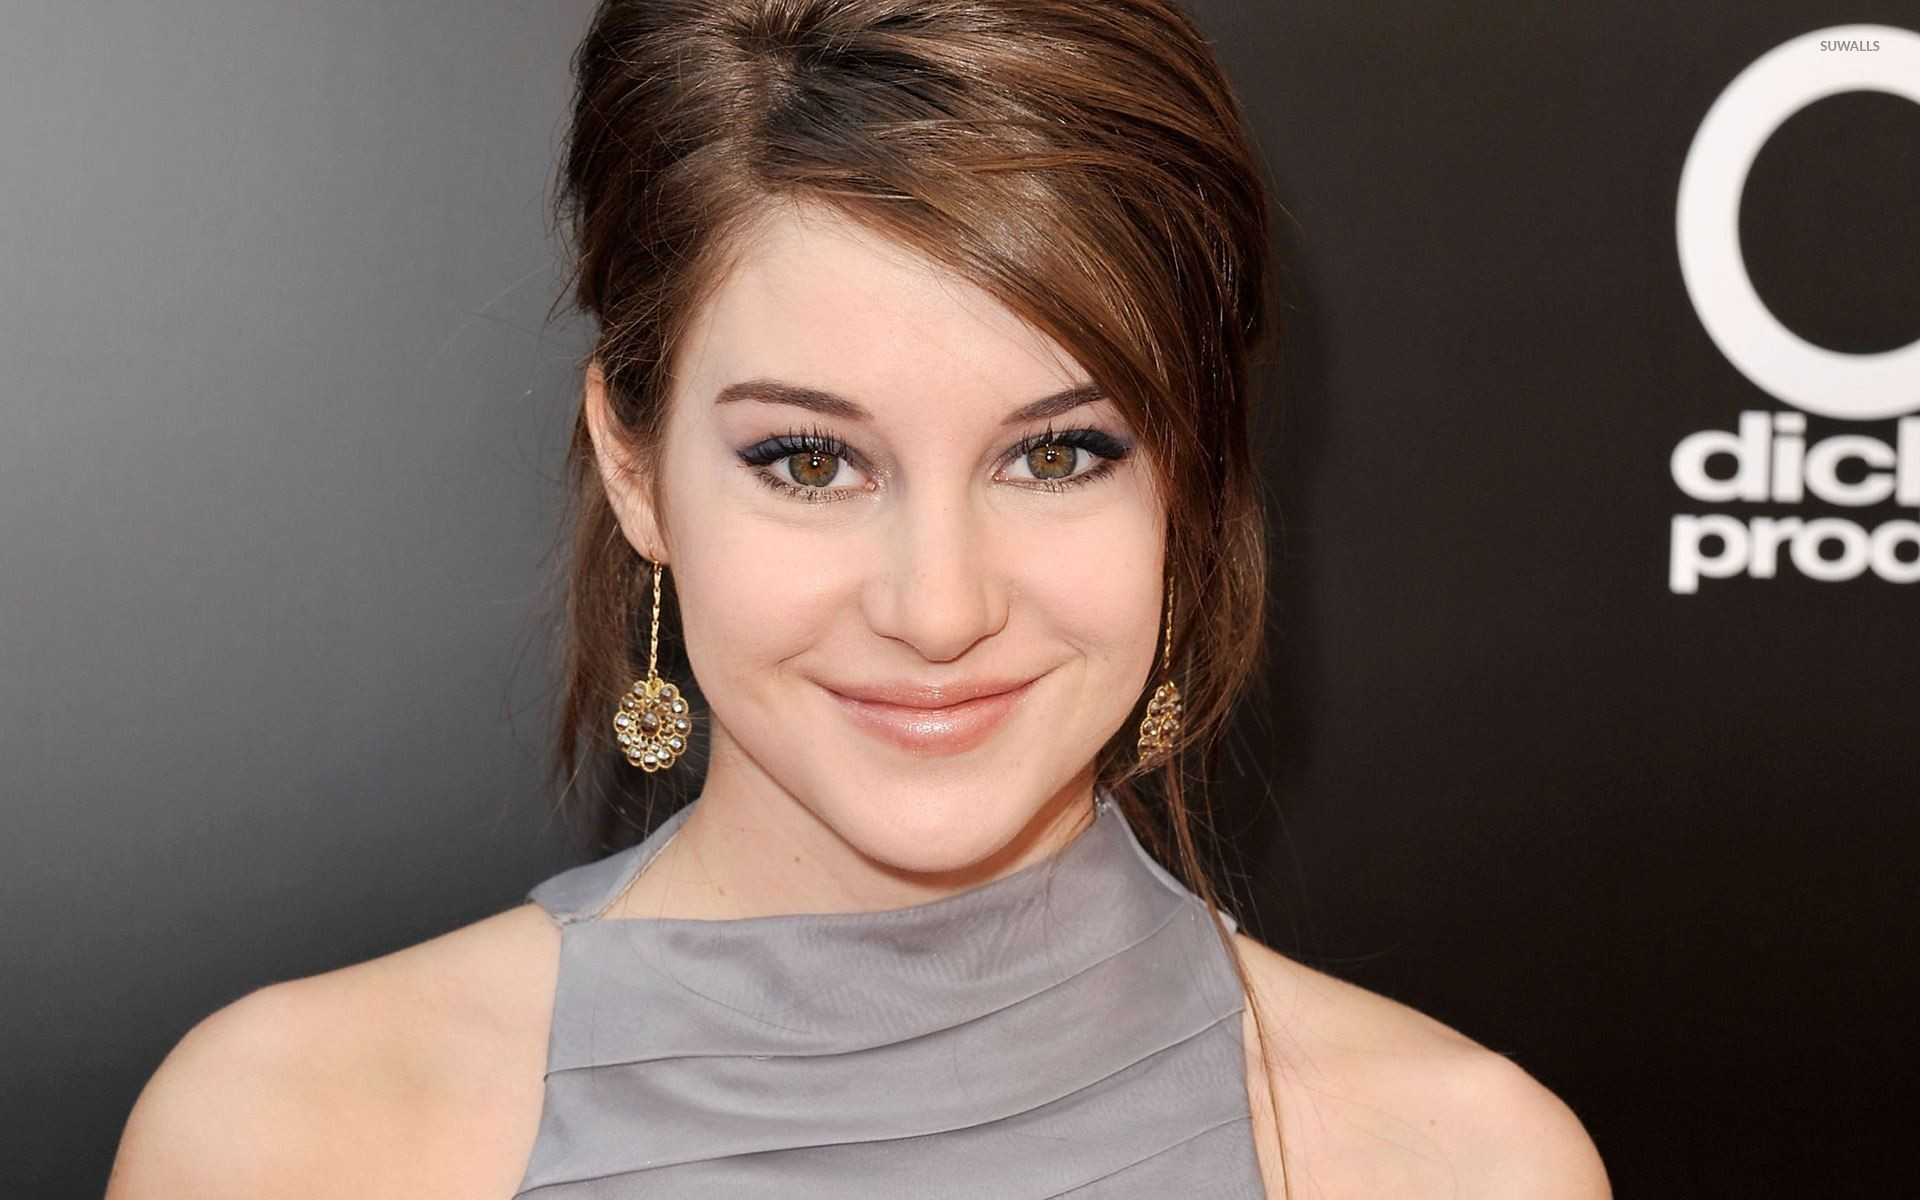 Celebrites Shailene Woodley nude photos 2019